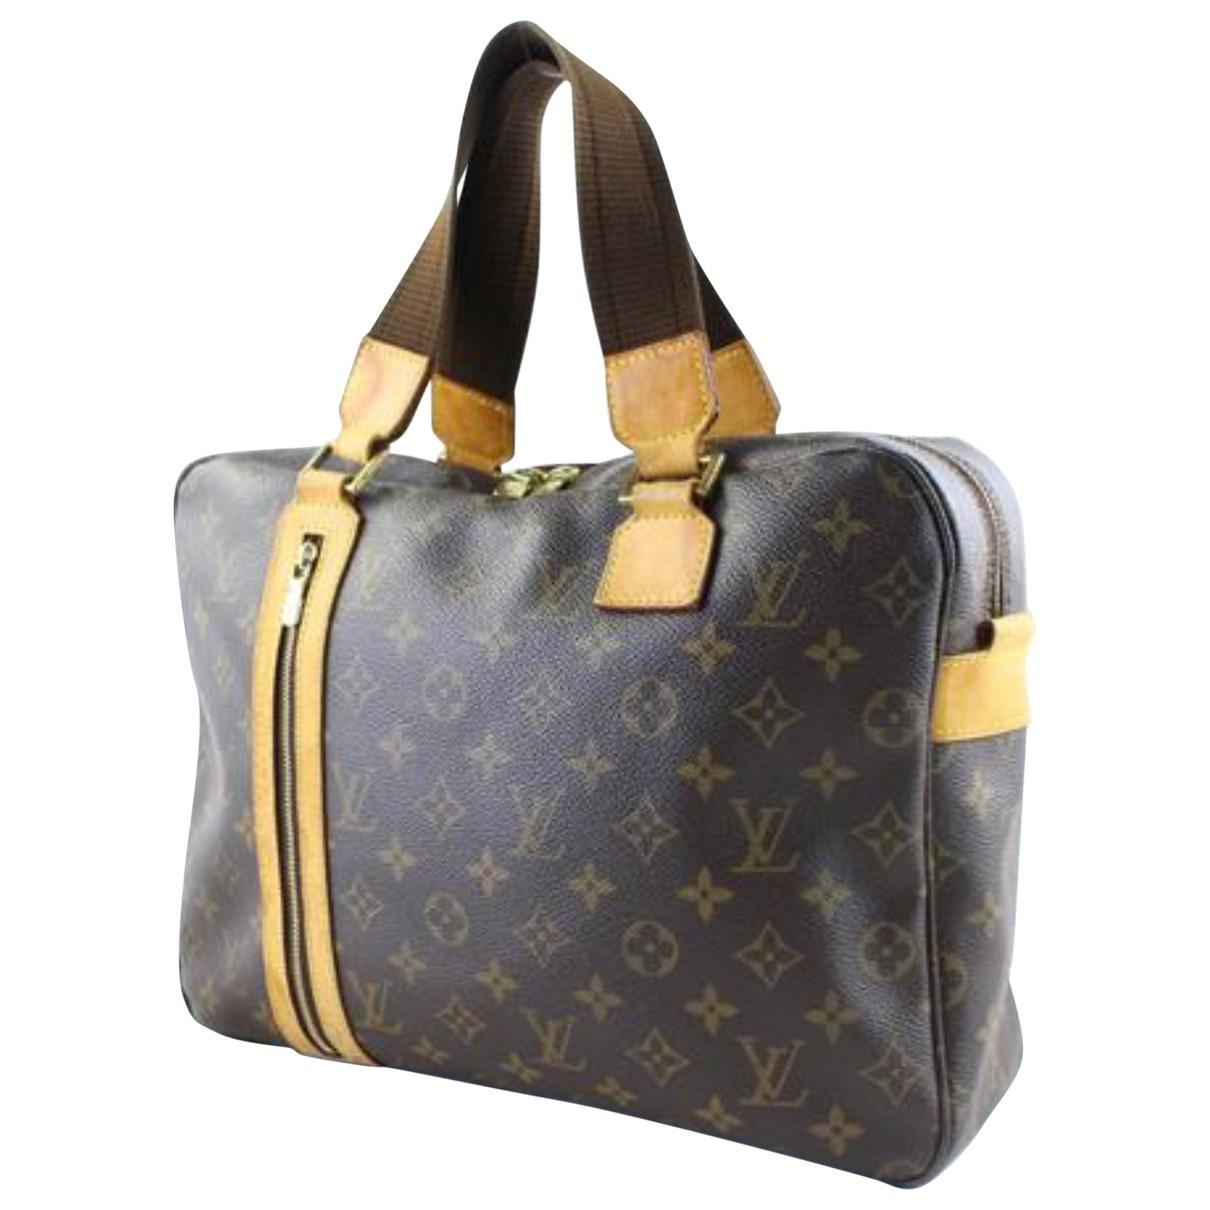 Louis Vuitton Pre-owned - Cloth bag